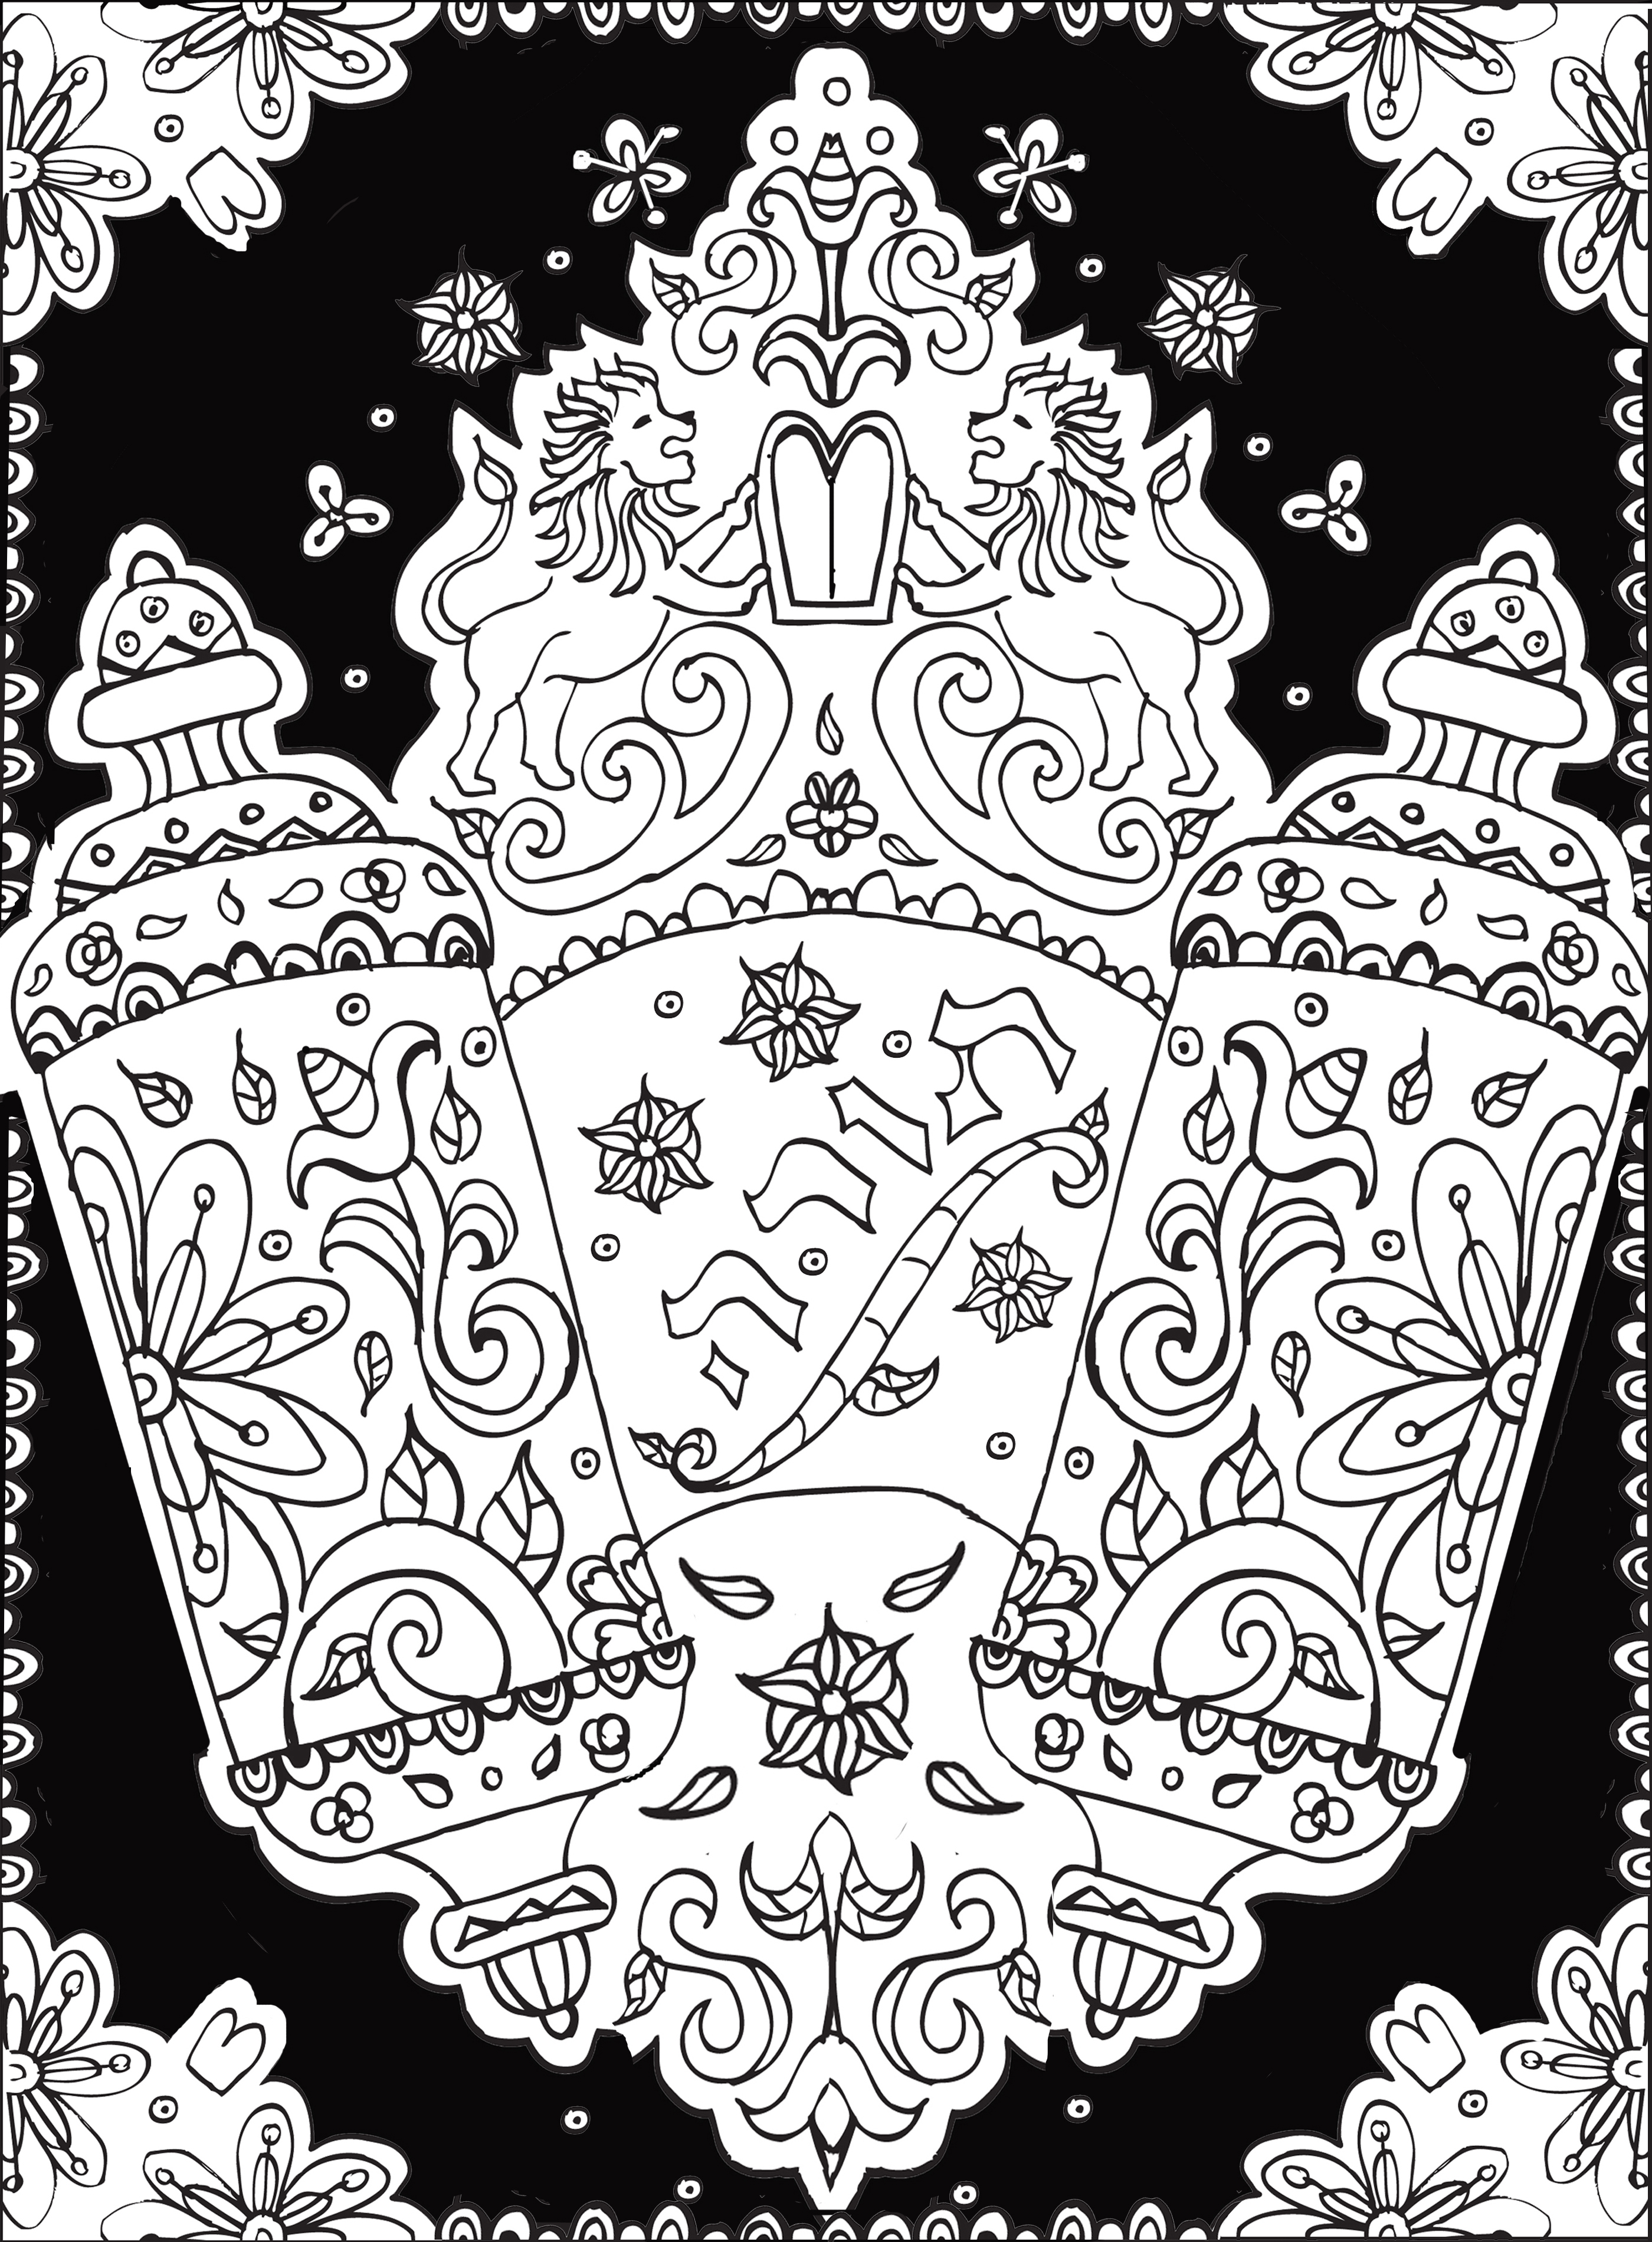 Simchat torah Coloring Pages  Gallery 8d - Free For kids